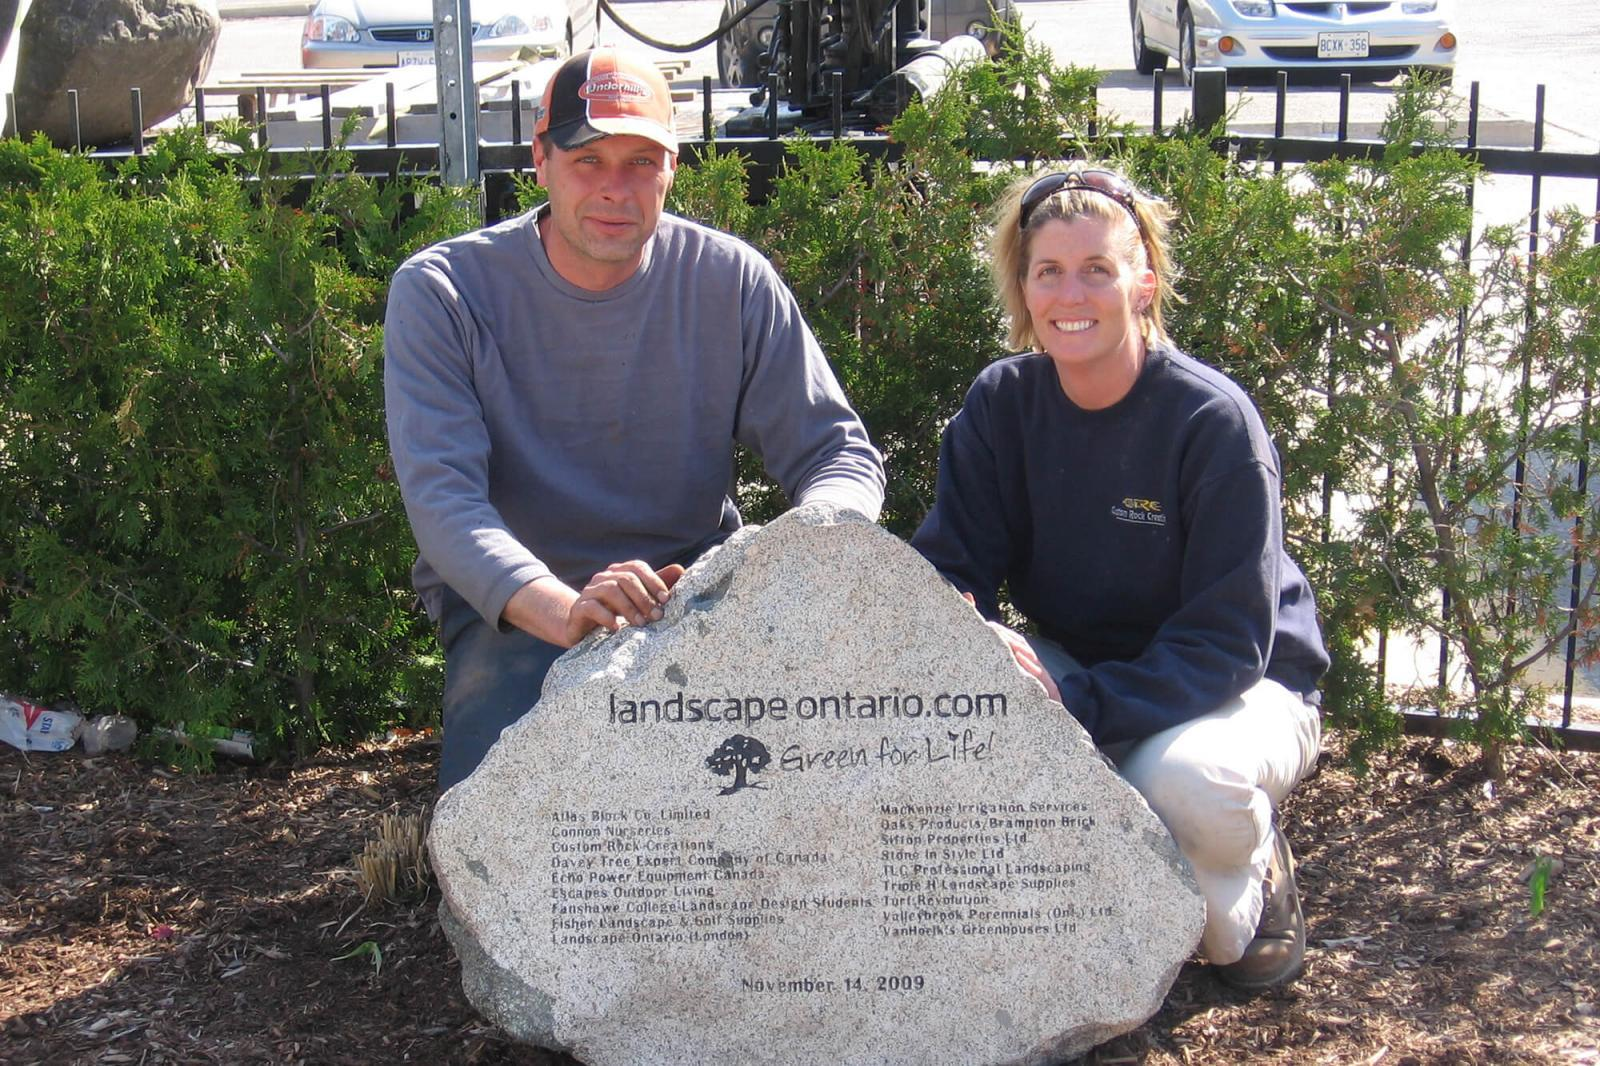 Placement of stone completes Global Garden